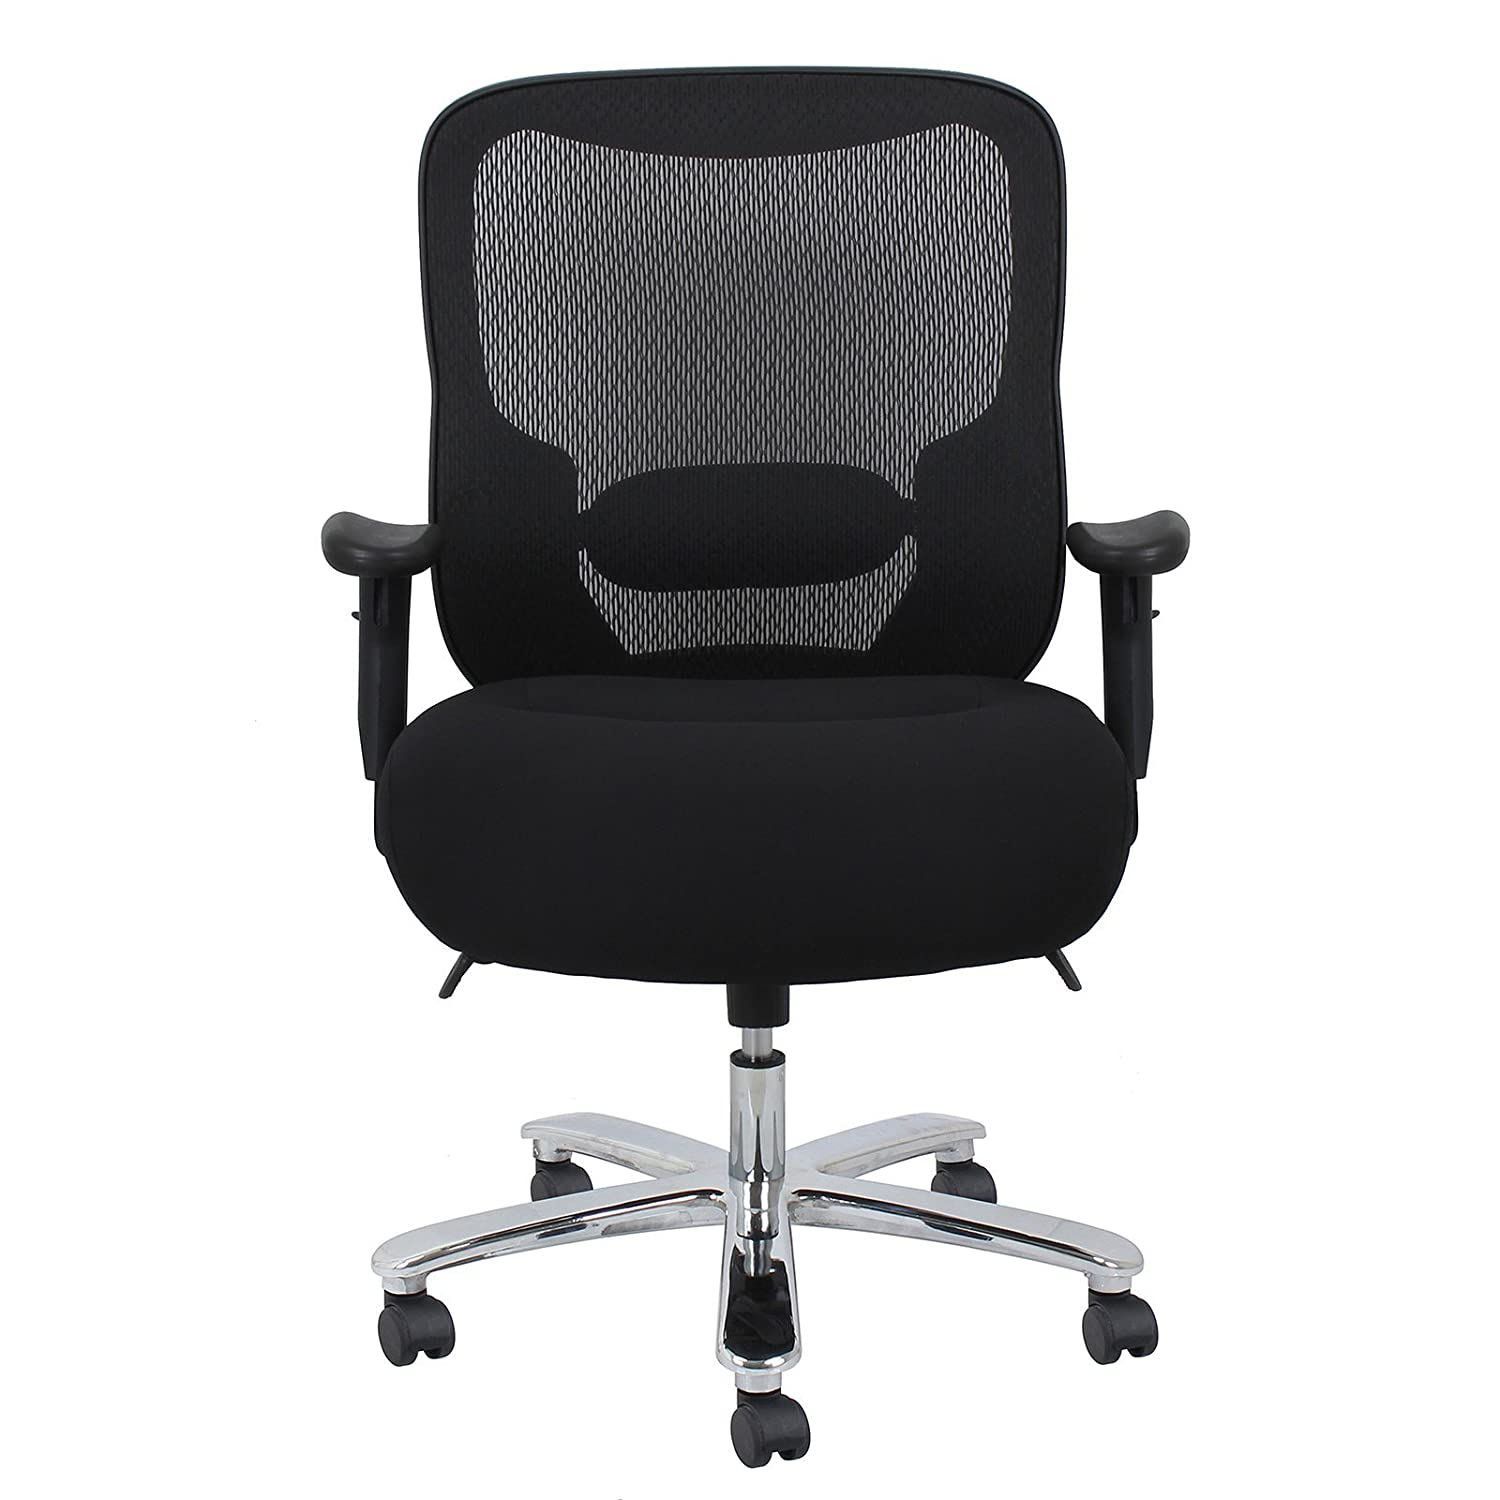 Amazon Essentials Big and Tall Executive Chair Fabric and